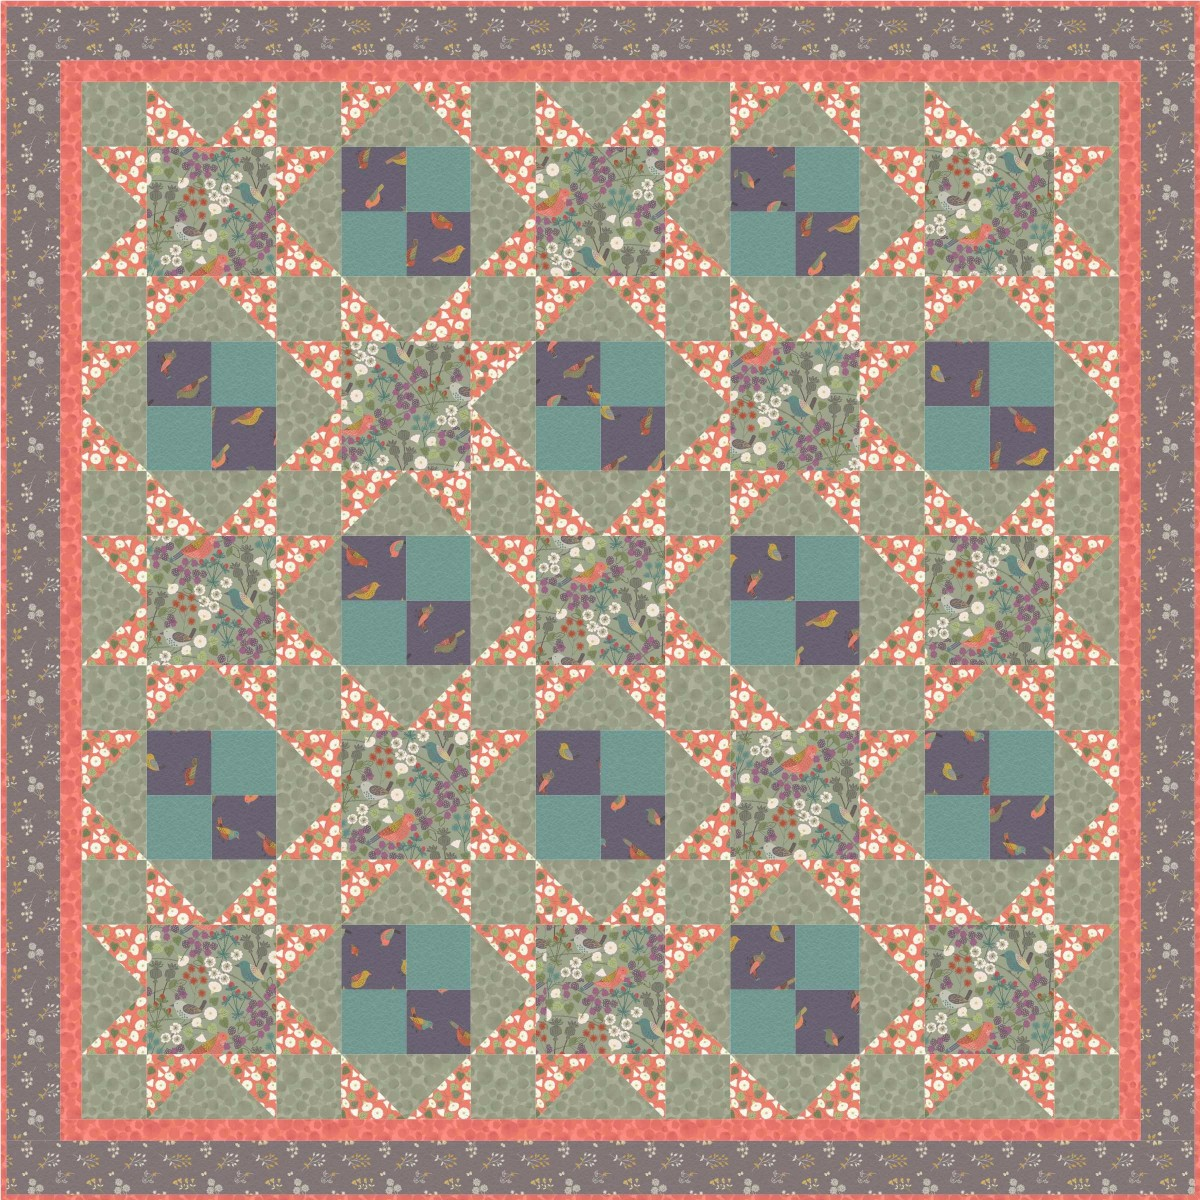 The Hedgerow Quilt Design 2